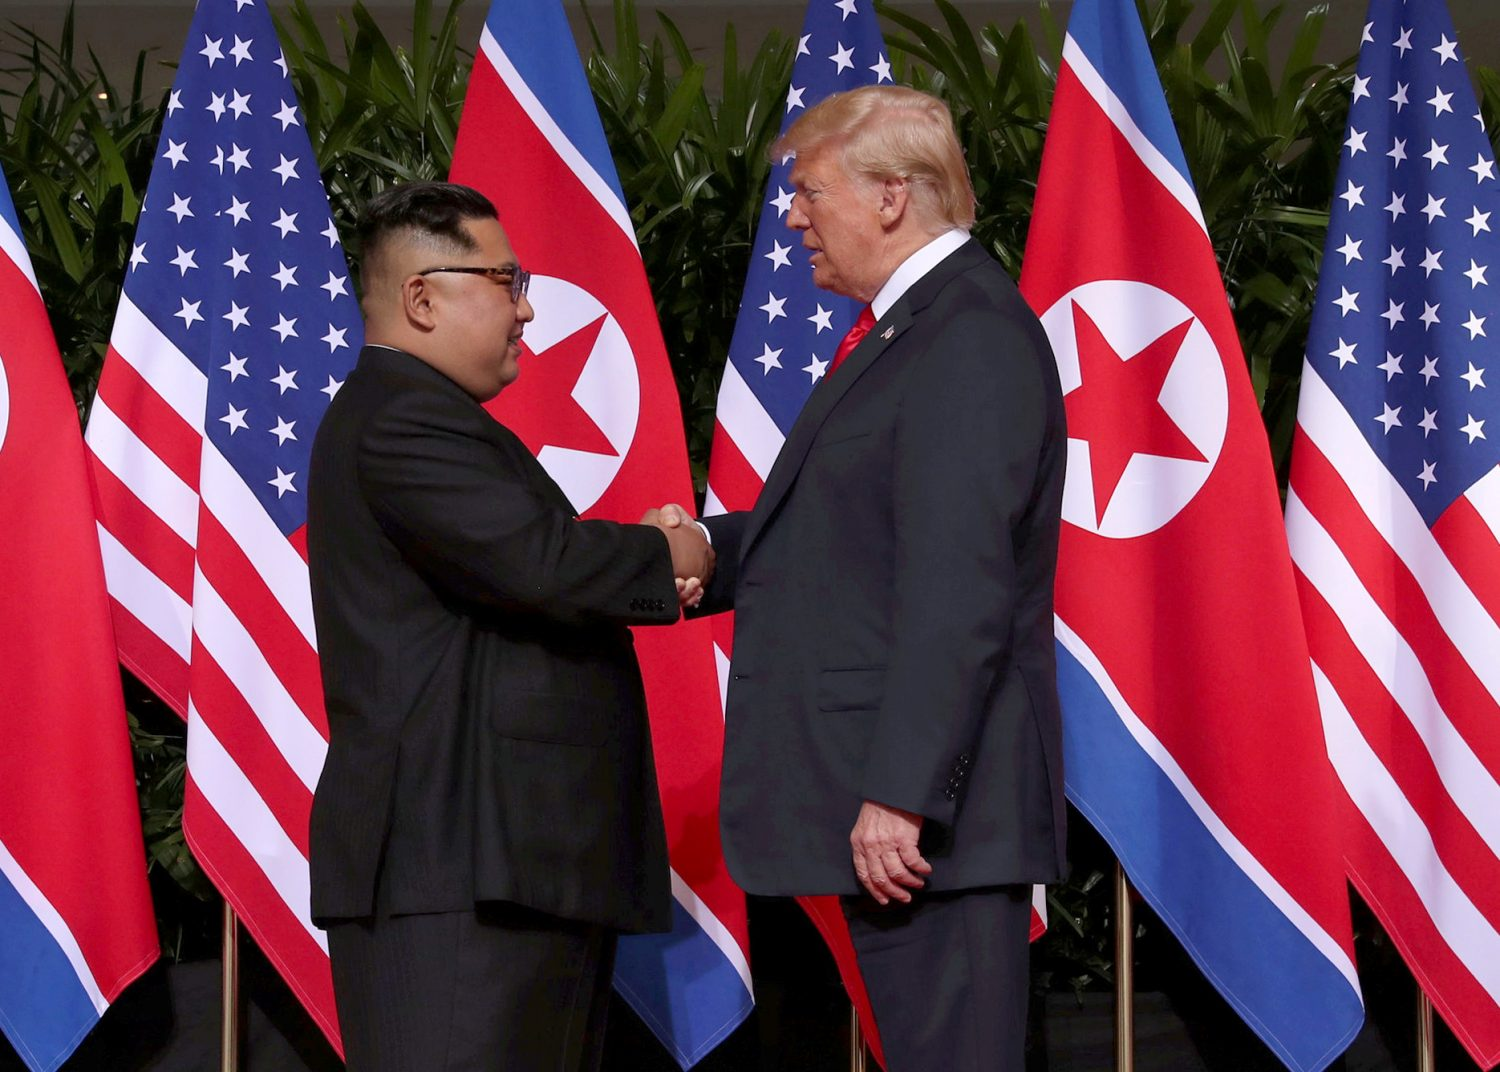 FILE PHOTO: U.S. President Donald Trump shakes hands with North Korean leader Kim Jong Un at the Capella Hotel on Sentosa island in Singapore June 12, 2018. REUTERS/Jonathan Ernst/File Photo